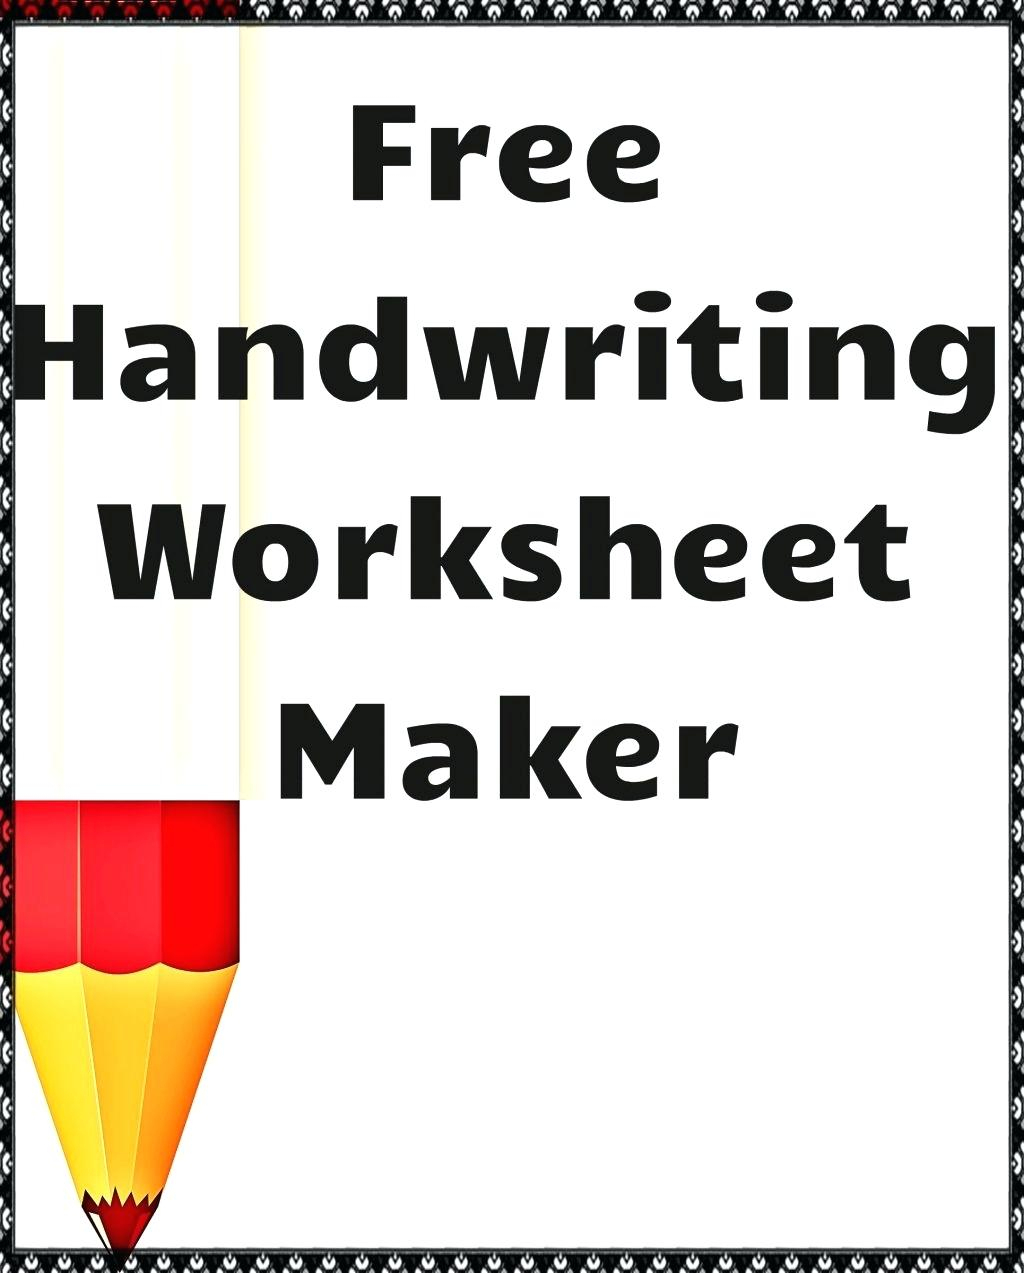 Make Your Own Cursive Writing Worksheets Free Printable Tracing - Make Your Own Worksheets Free Printable